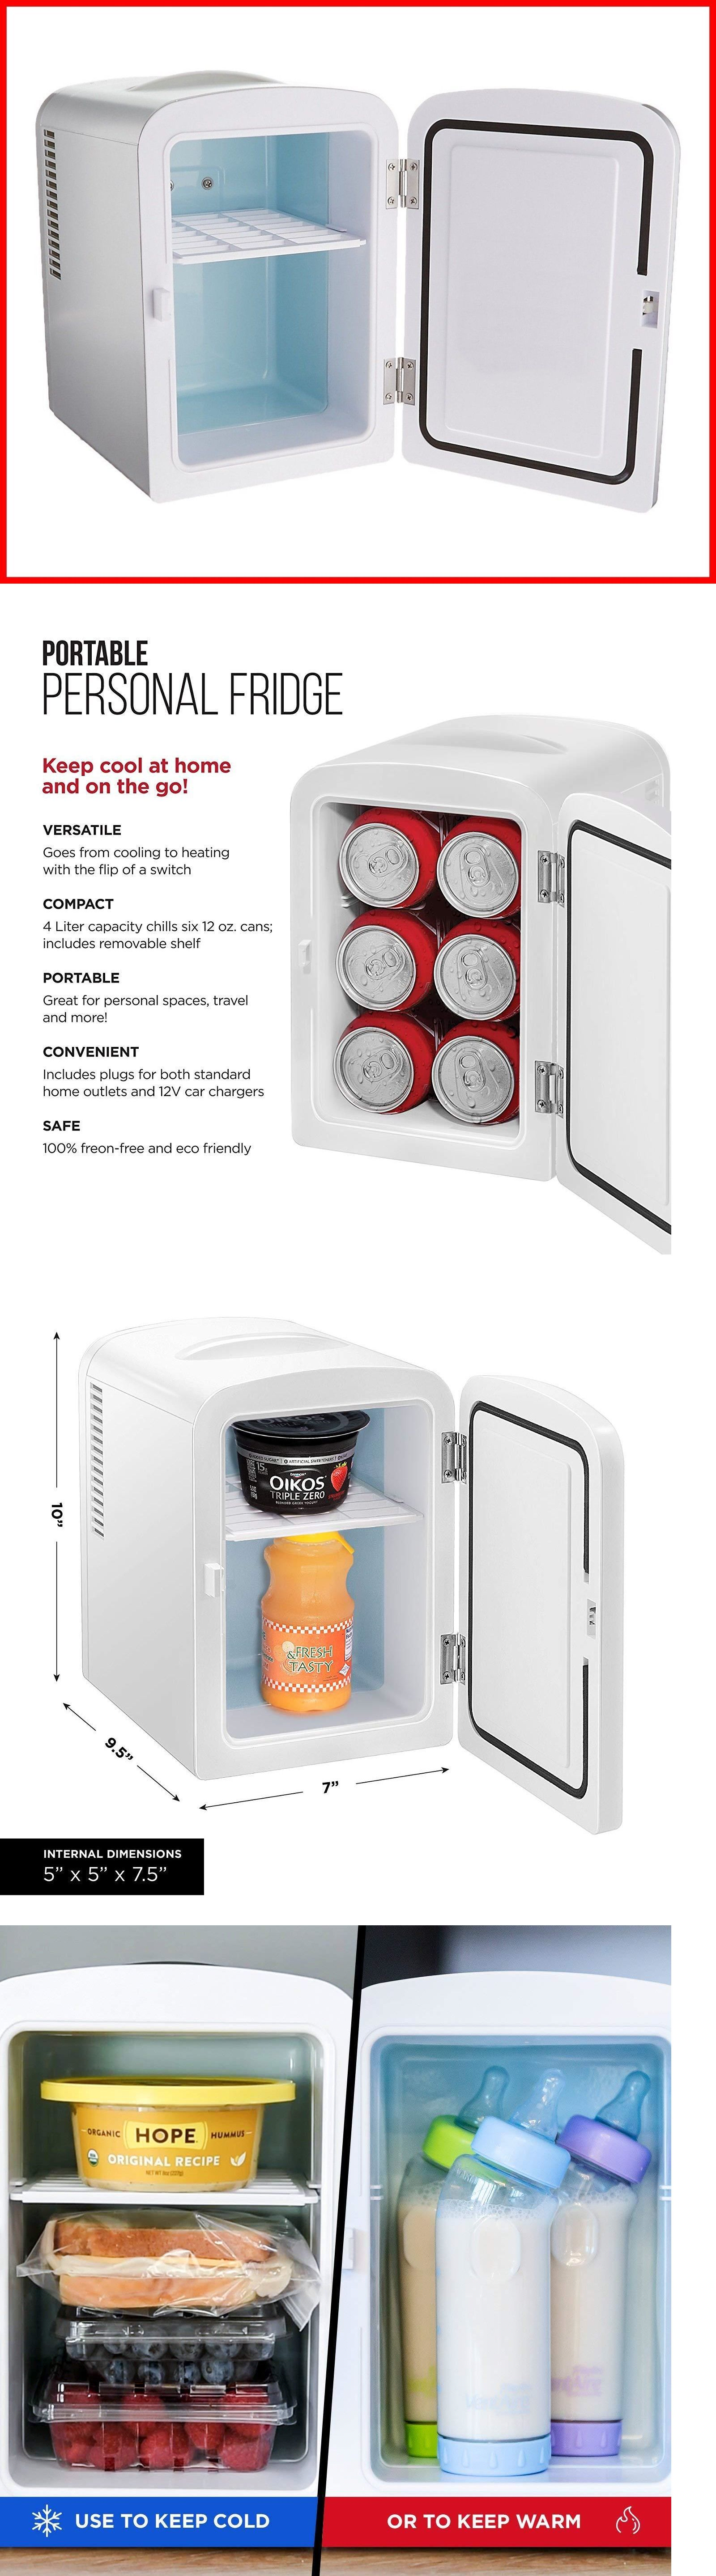 Details About Portable Small Compact Fridge Refrigerator Cooler Warmer Dorm Bedroom Travel Refrigerator Cooler Compact Fridge Mini Fridges